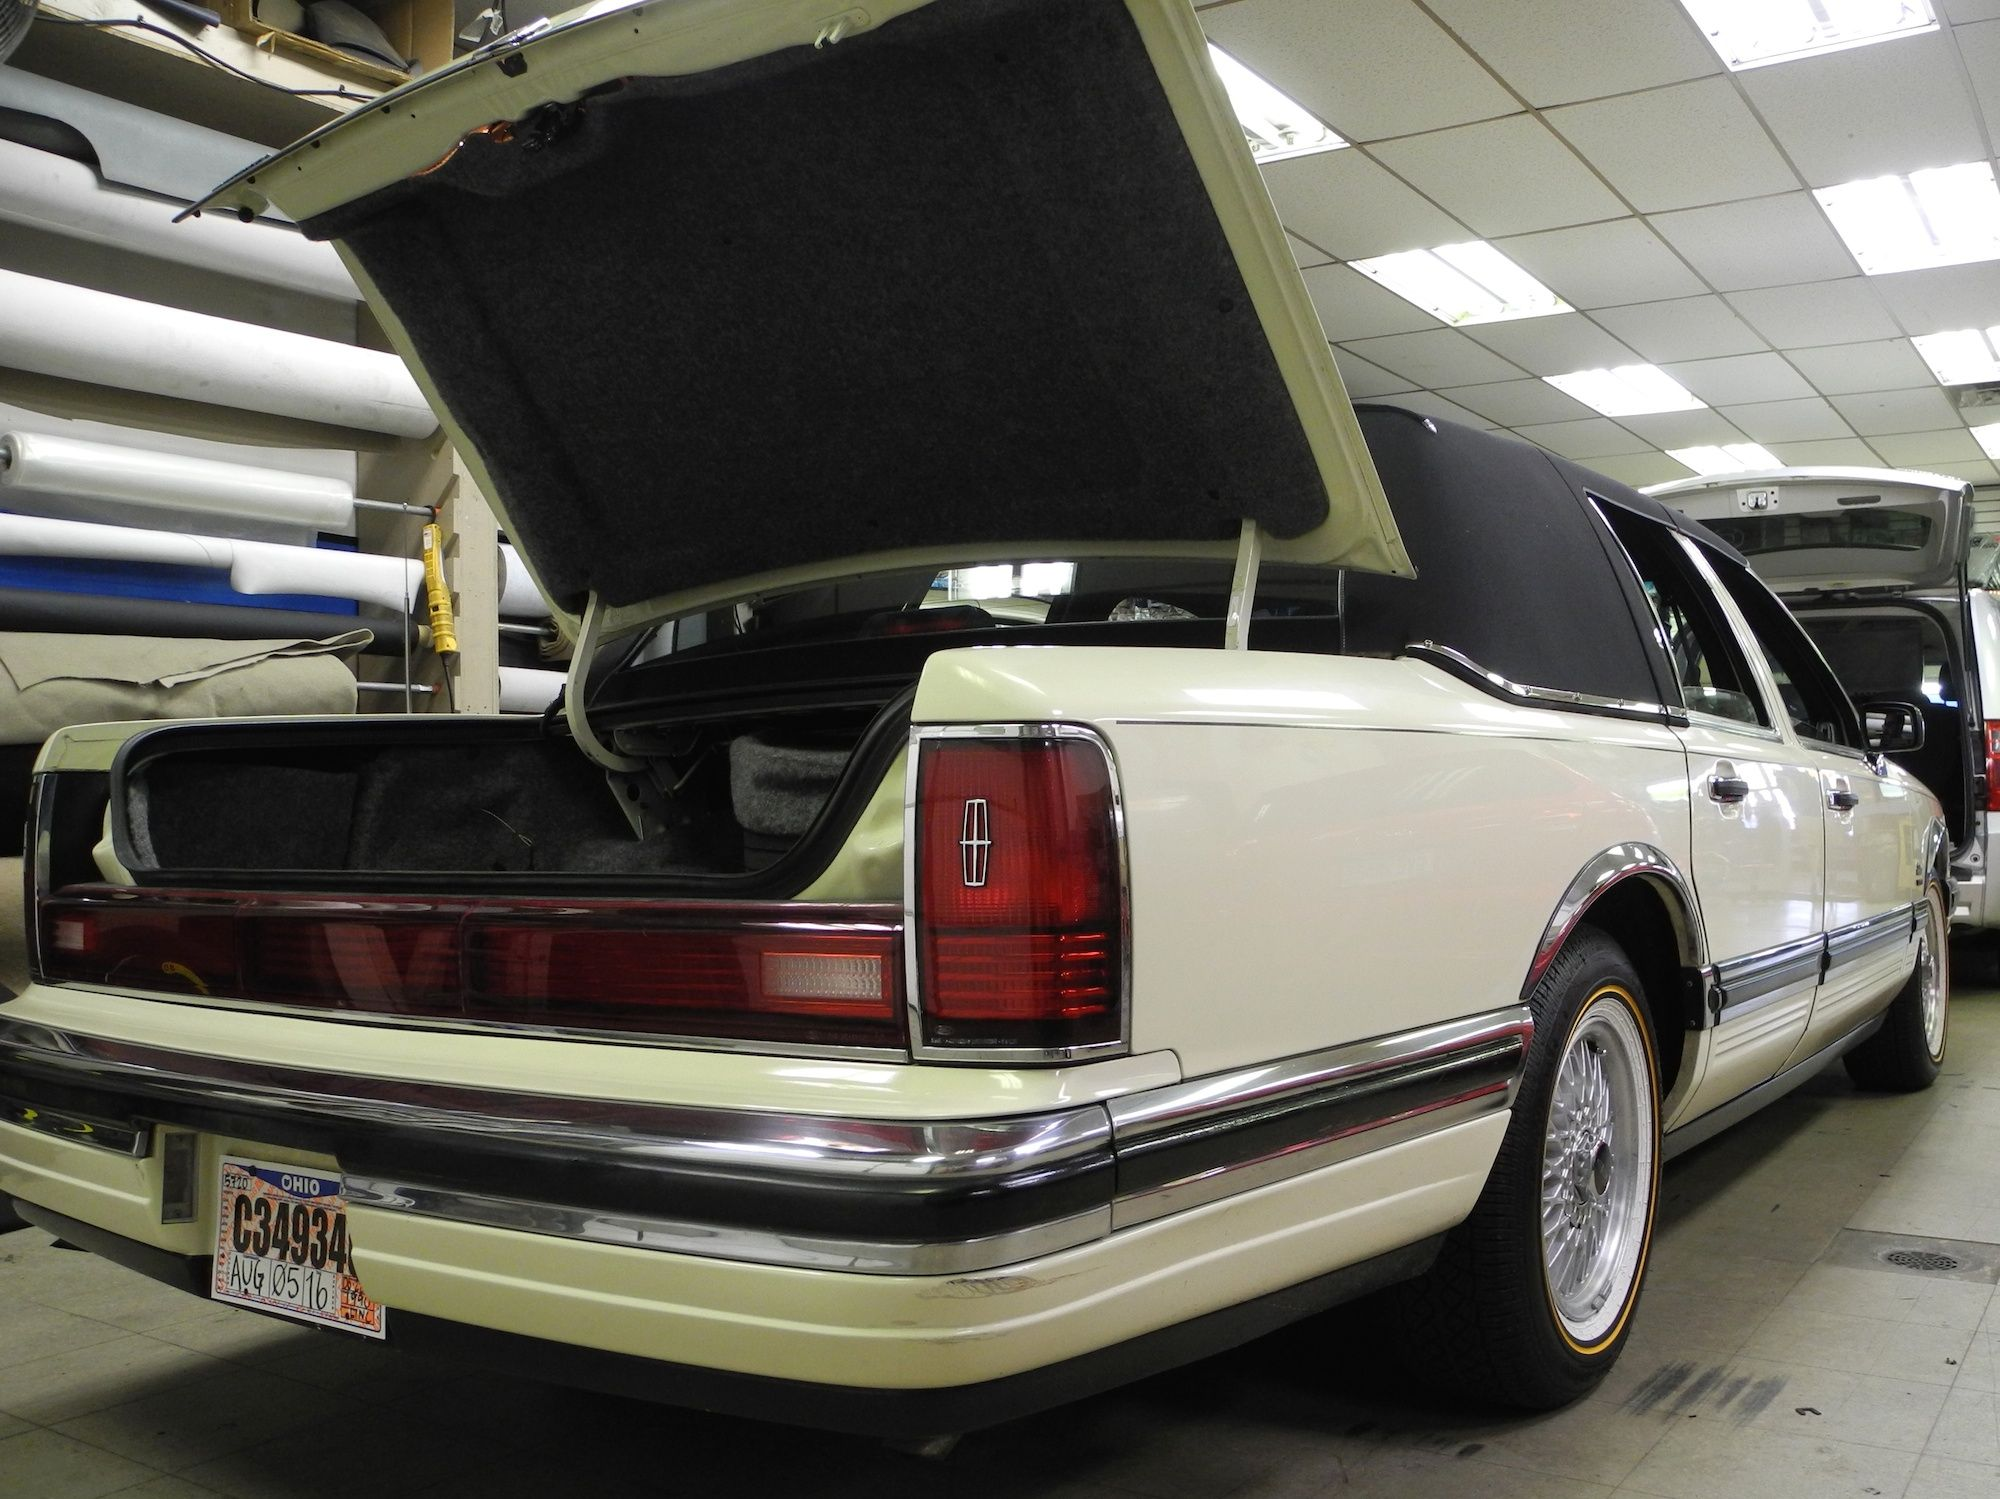 How Do You Define Full Sized American Luxury This 1990 Lincoln Town Car Felt